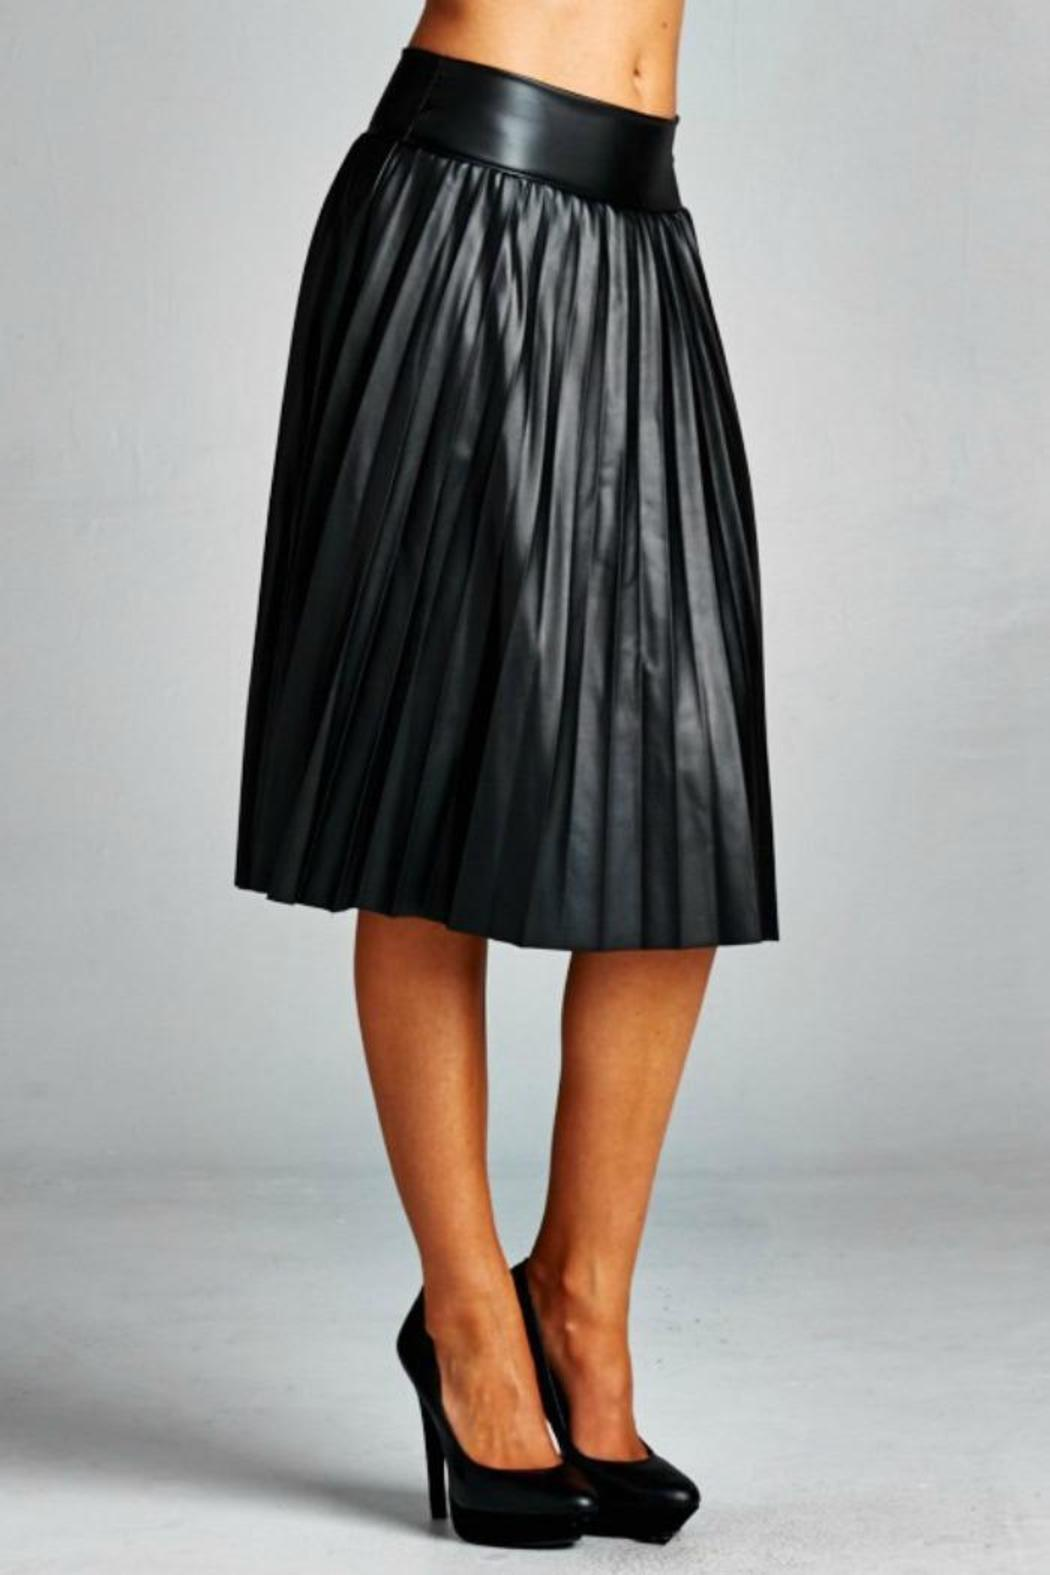 jw signature pleated pleather skirt from new york by